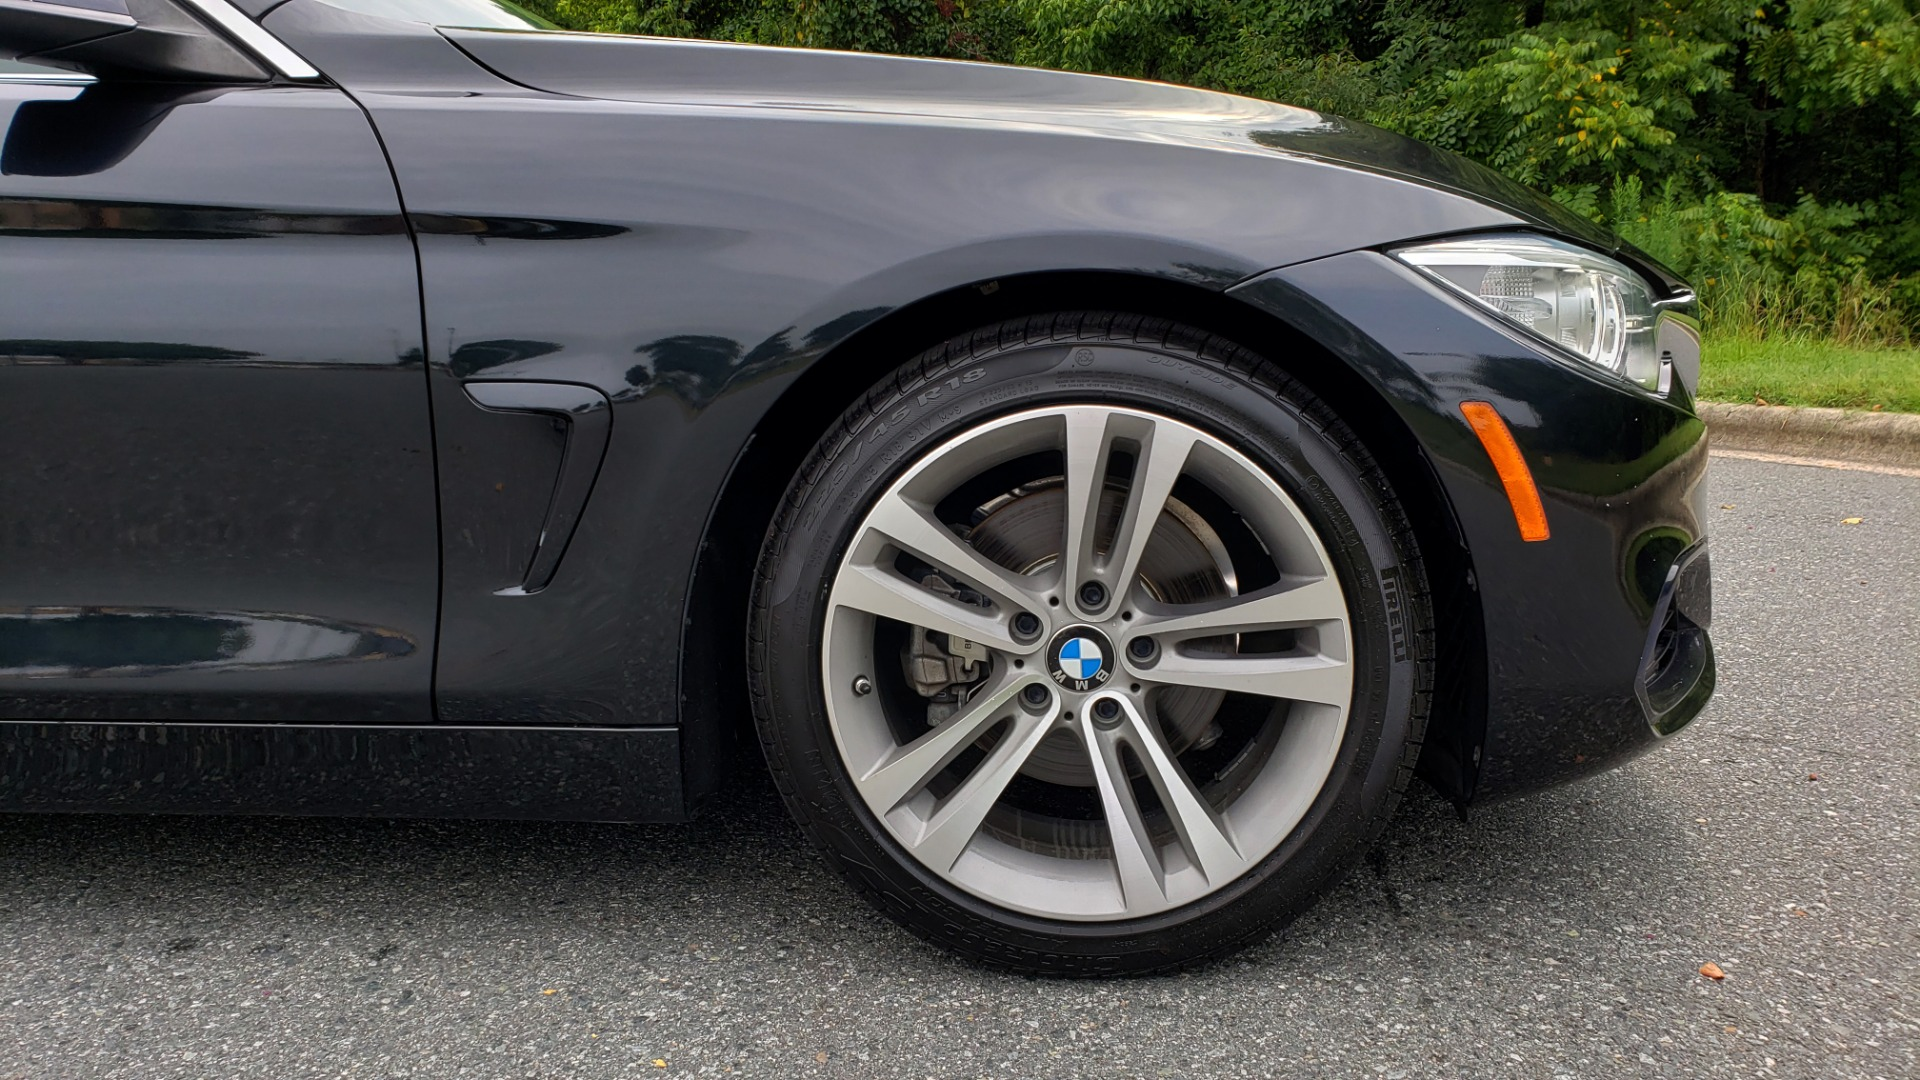 Used 2016 BMW 4 SERIES 428I PREMIUM COUPE / 2.0L / AUTO / NAV / SUNROOF / HEATED SEATS for sale $22,995 at Formula Imports in Charlotte NC 28227 69